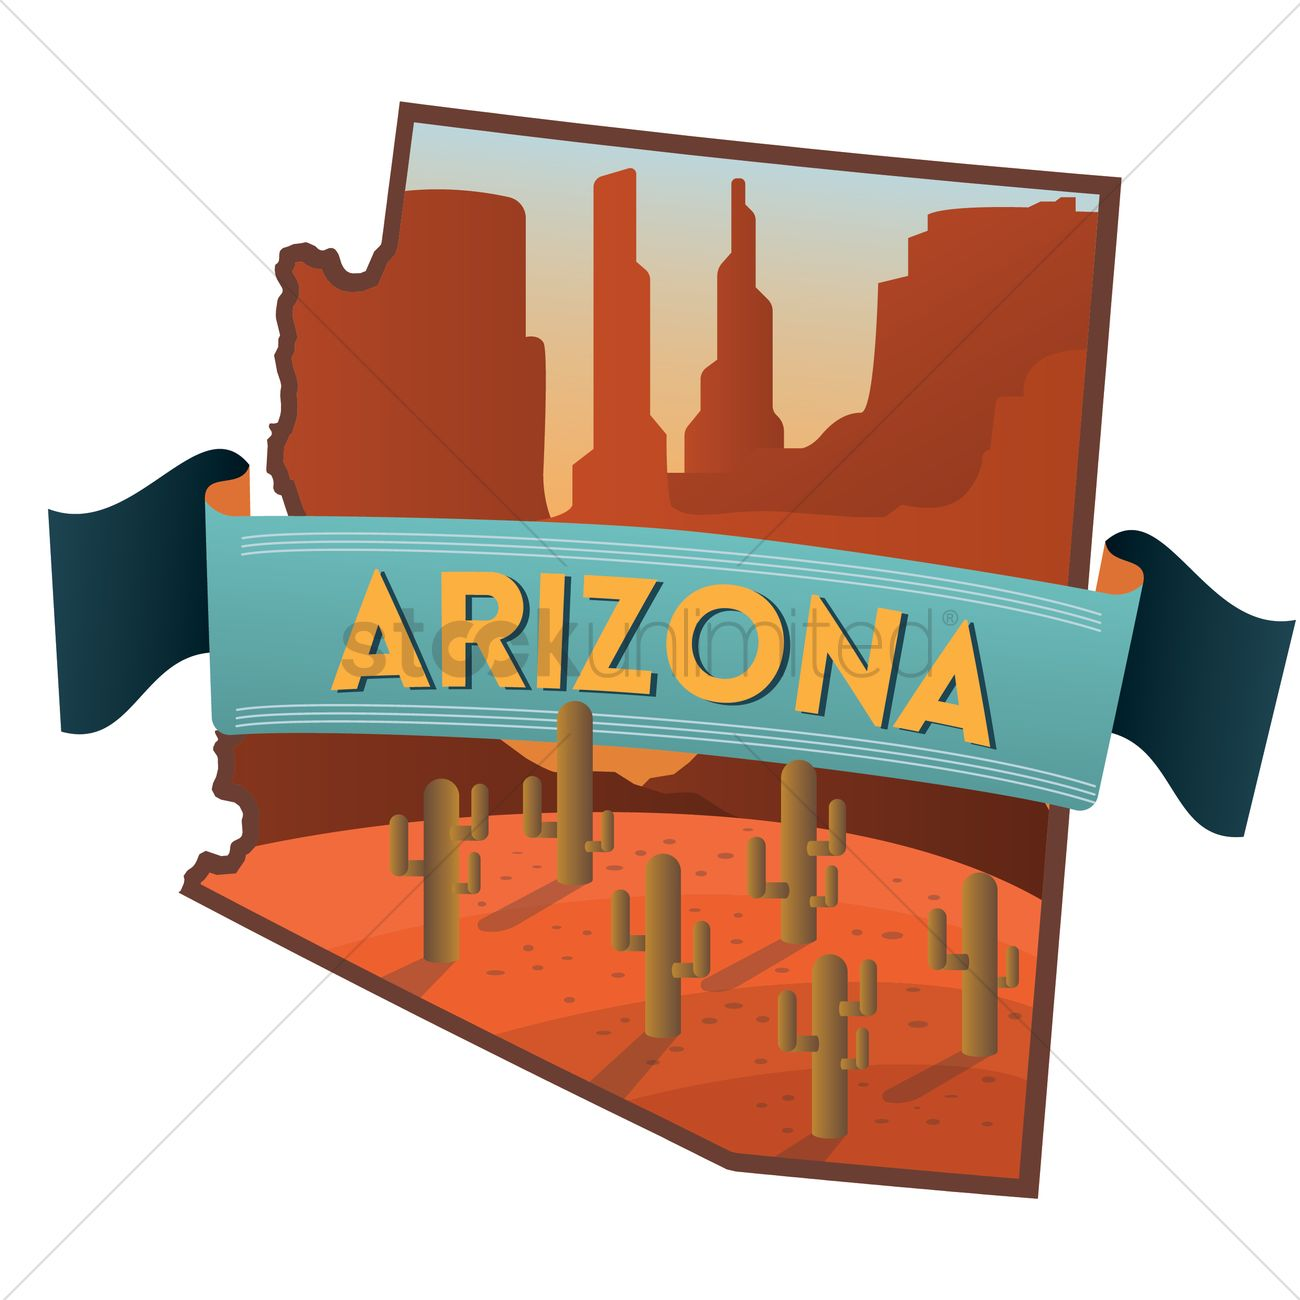 Arizona state map Vector Image - 1564305 | StockUnlimited